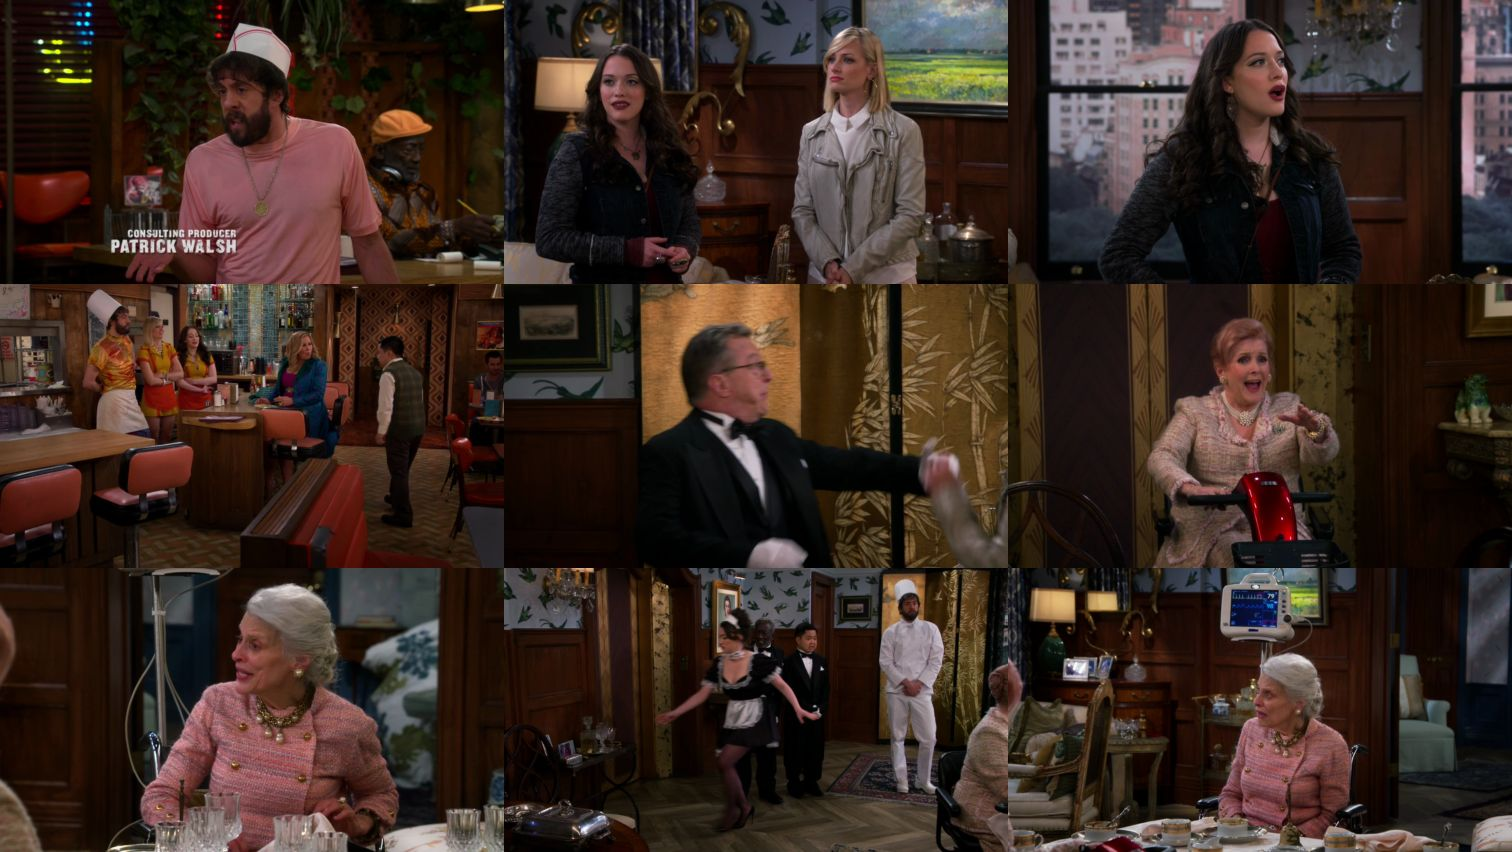 2 Broke Girls S05E07 HDTV x264-LOL